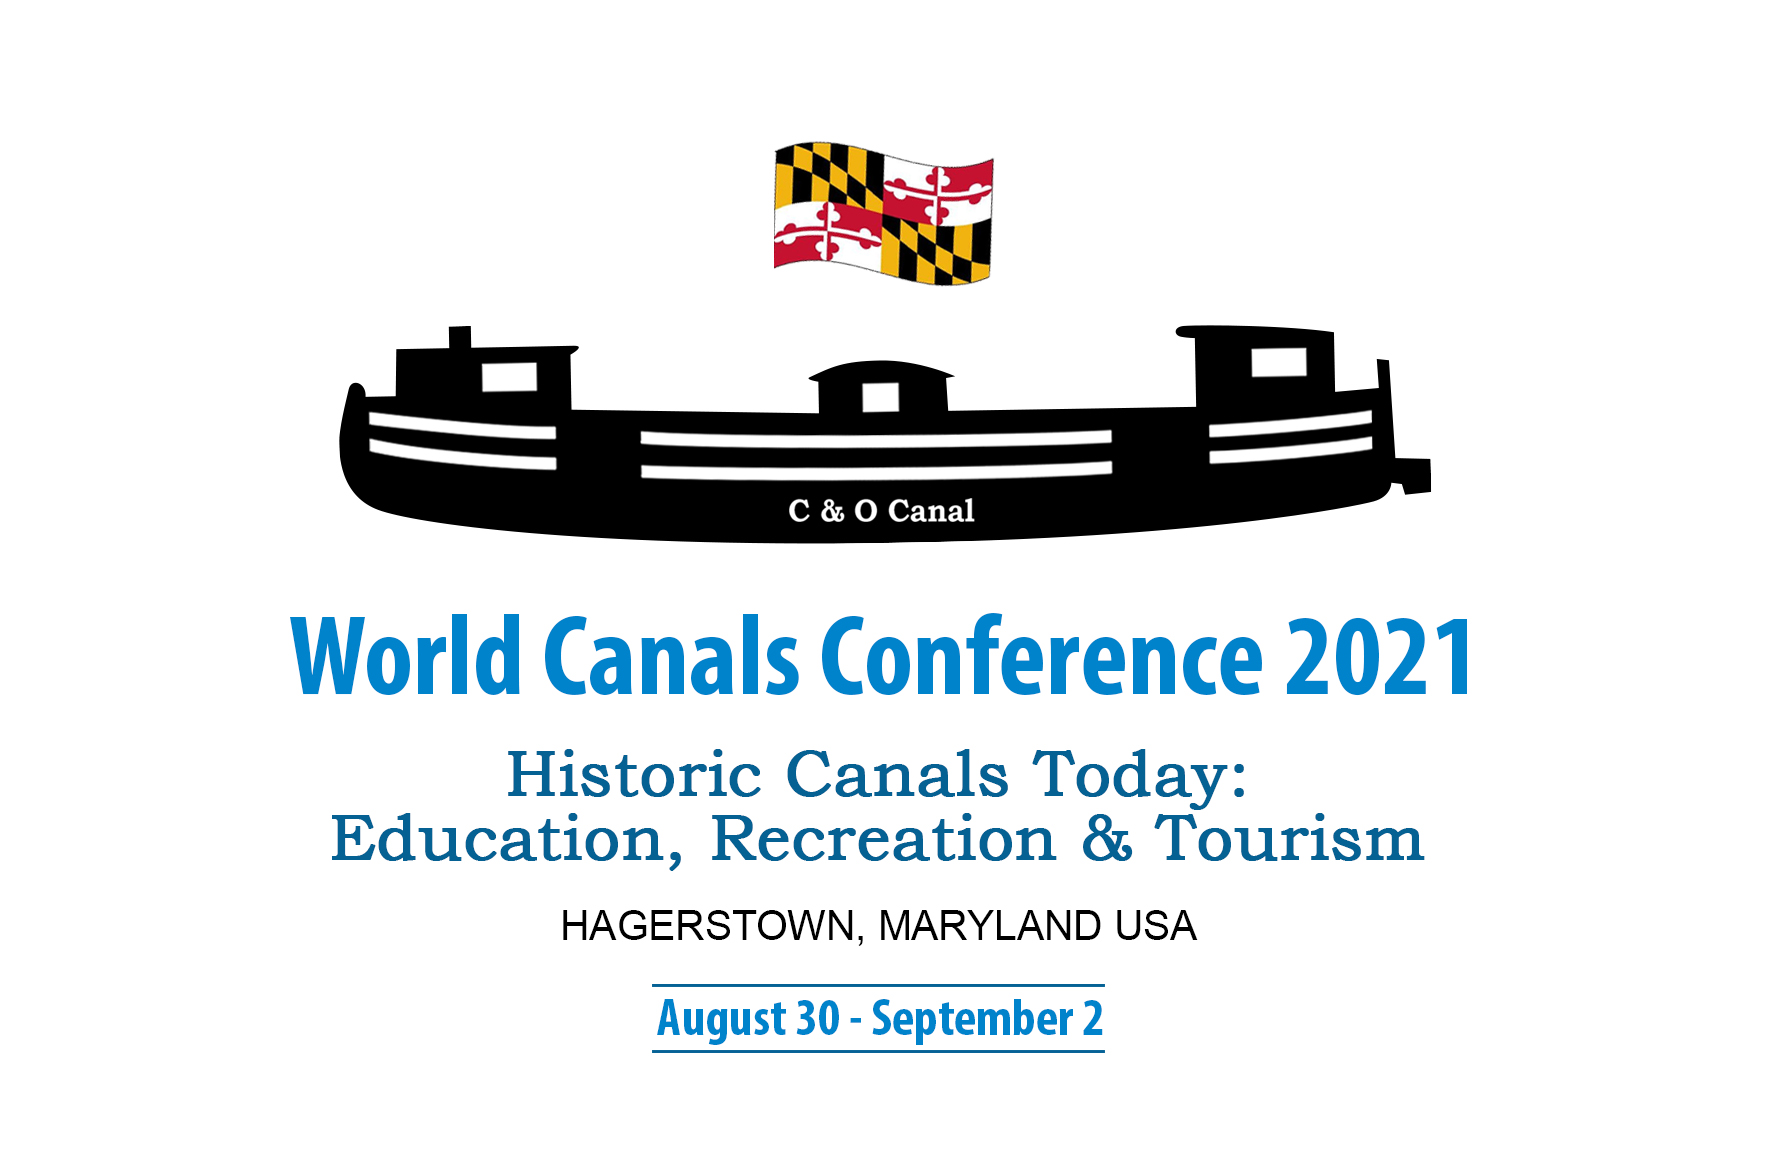 WCC2021 Historic Canals Today